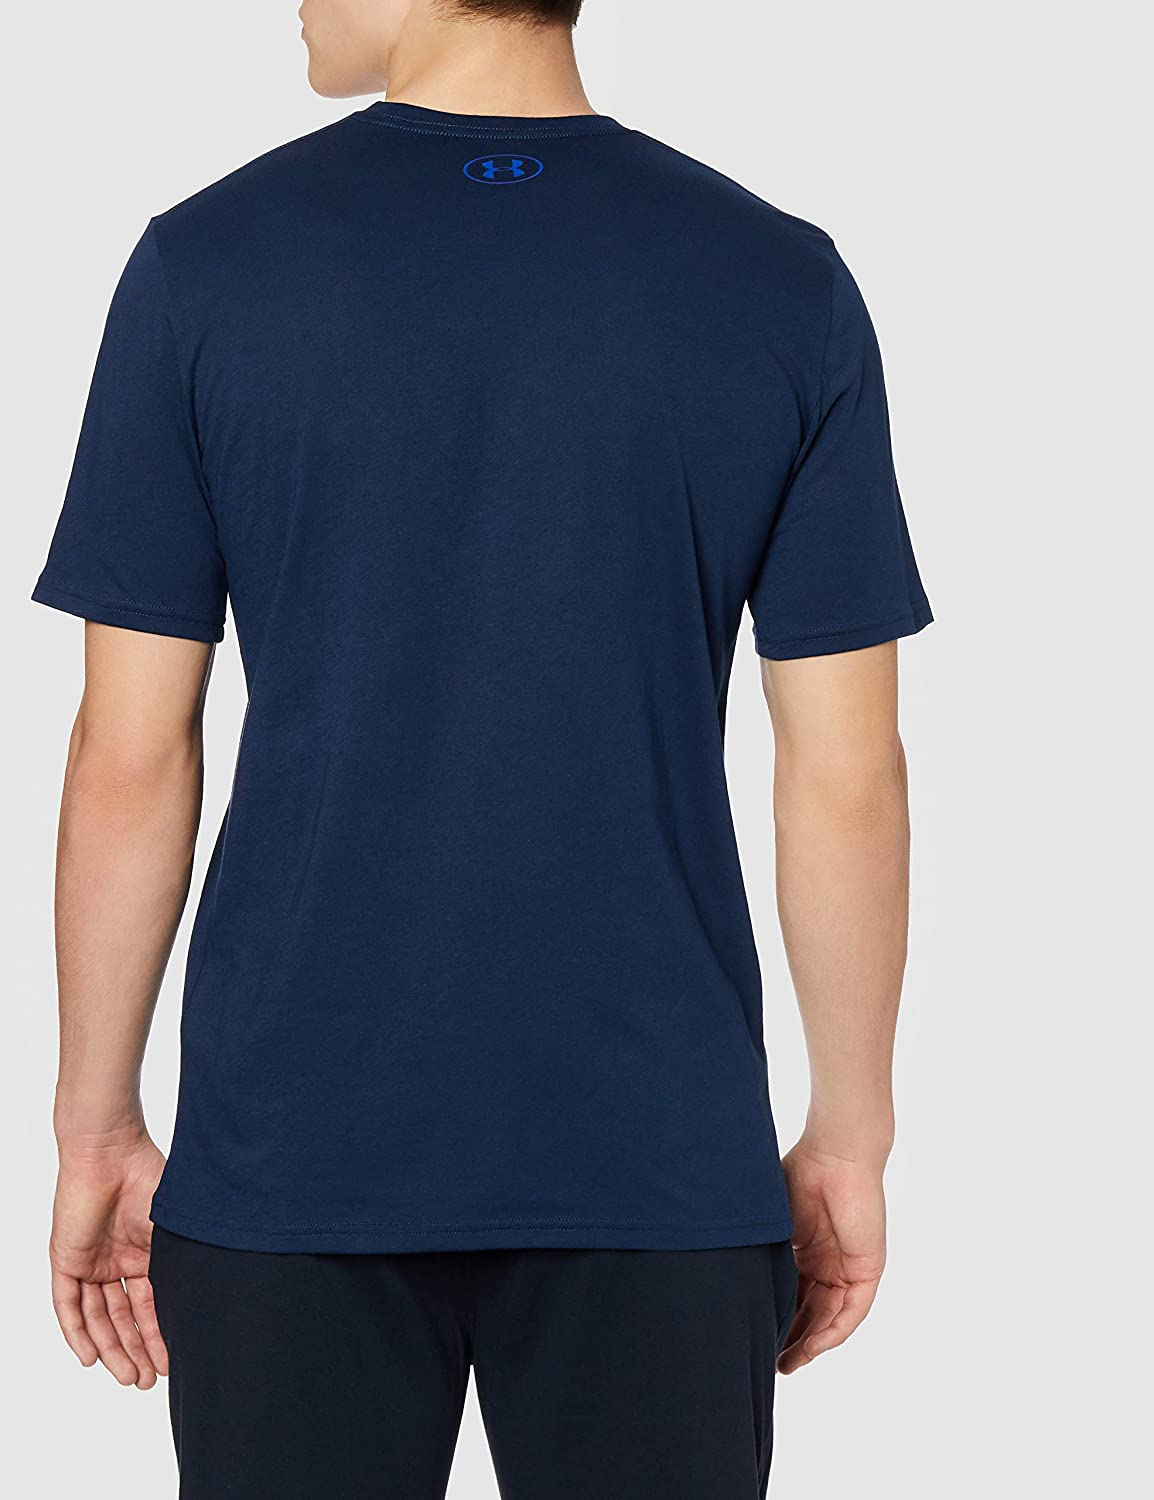 Fast-Drying Mens T Shirt with Graphic Under Armour Mens Ua Gl Foundation Short Sleeve Tee Short Sleeves Soft Mens T Shirt for Training and Fitness